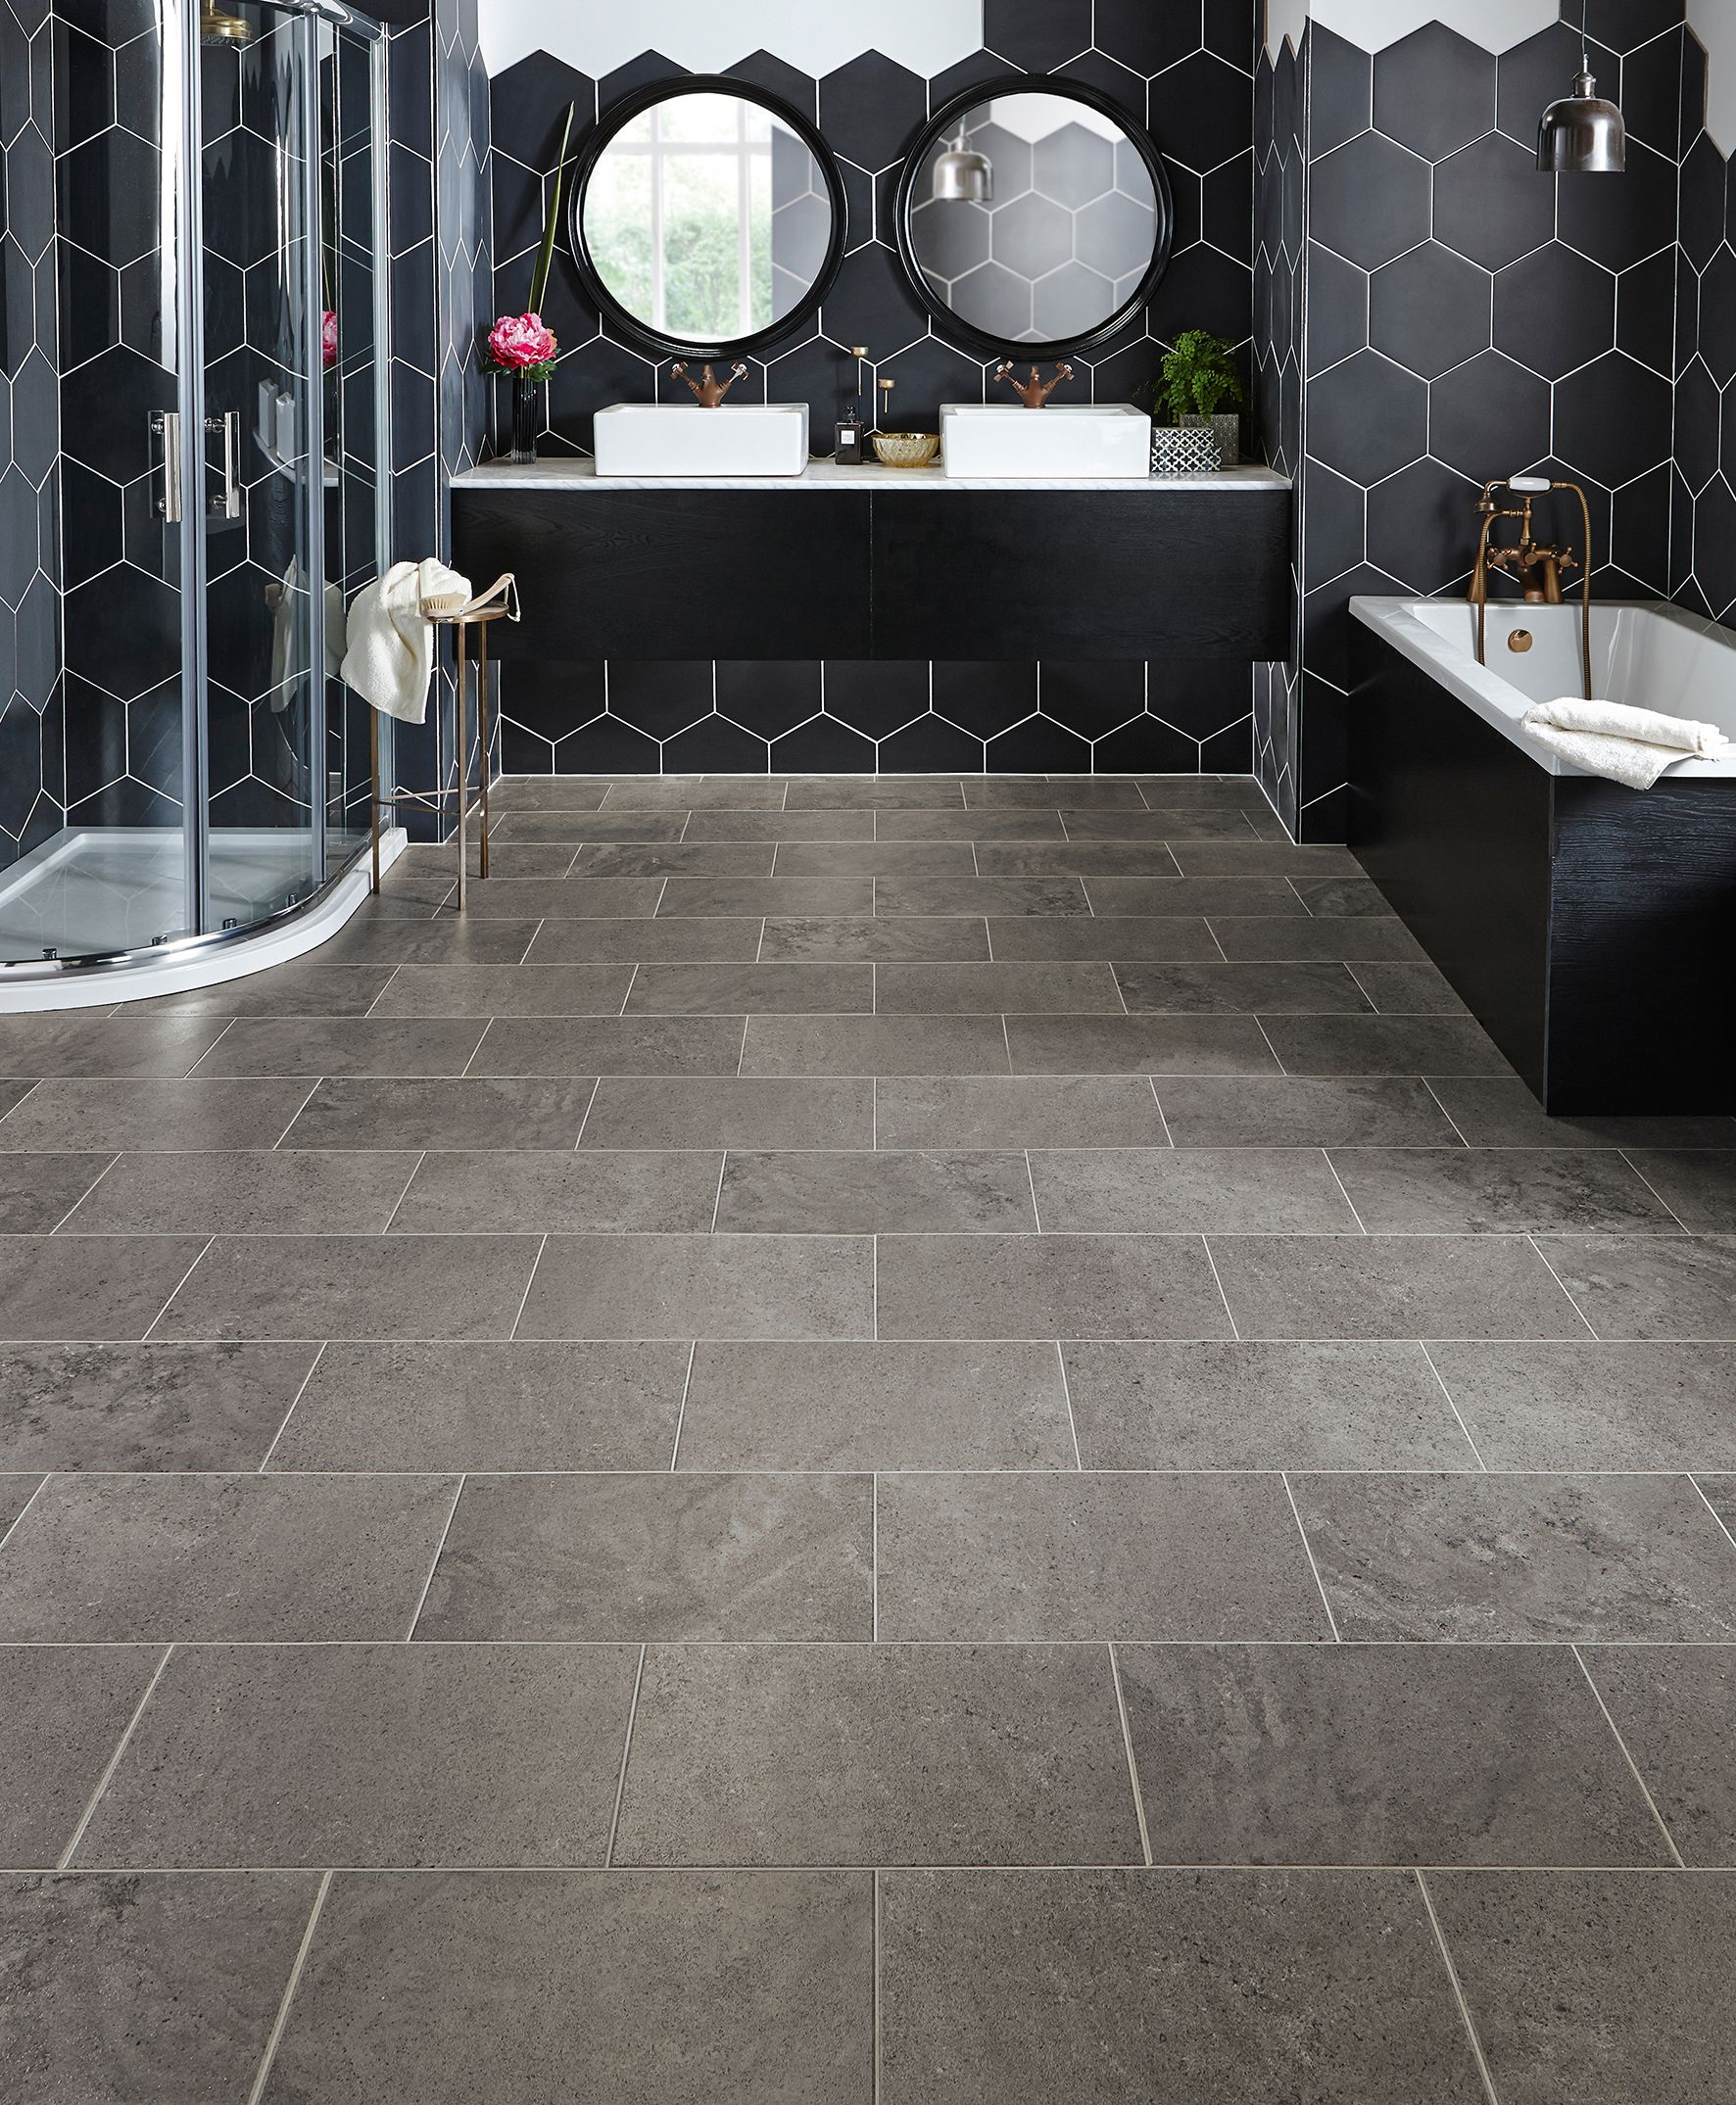 Karndean Flooring Looks And Feels Like Tiles But Is Much More Practical Available At Oldrids Downtown Bathroom Vinyl Vinyl Flooring Bathroom Vinyl Flooring